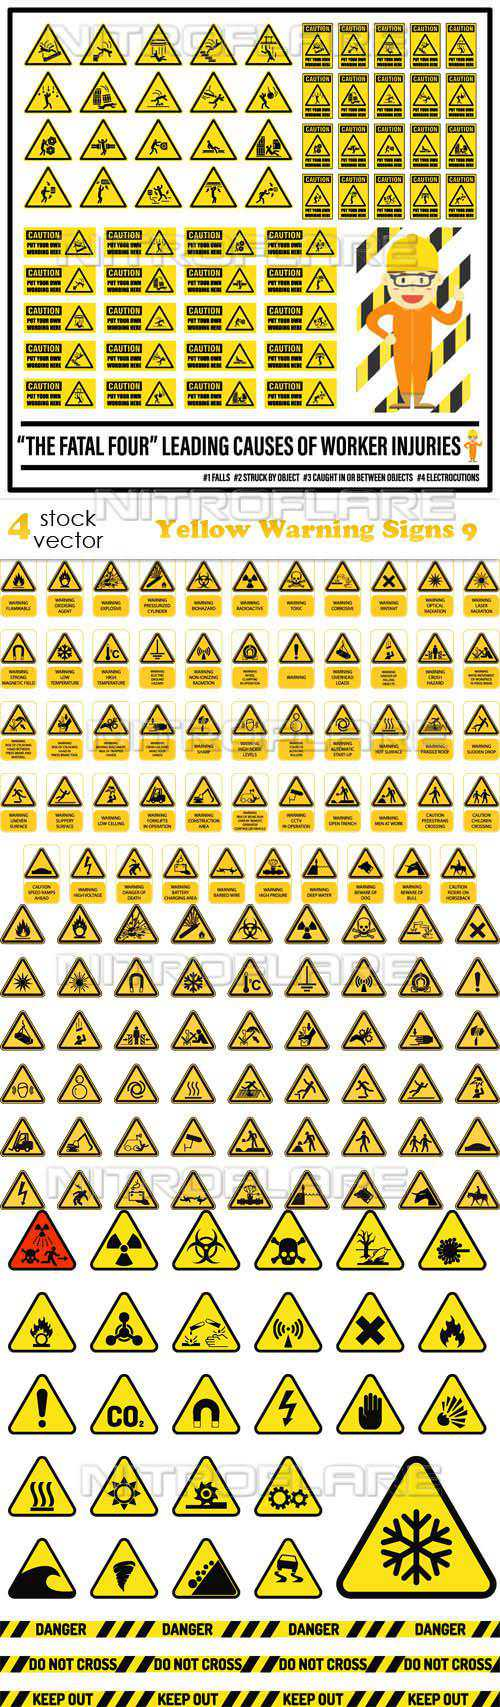 Yellow Warning Signs 9